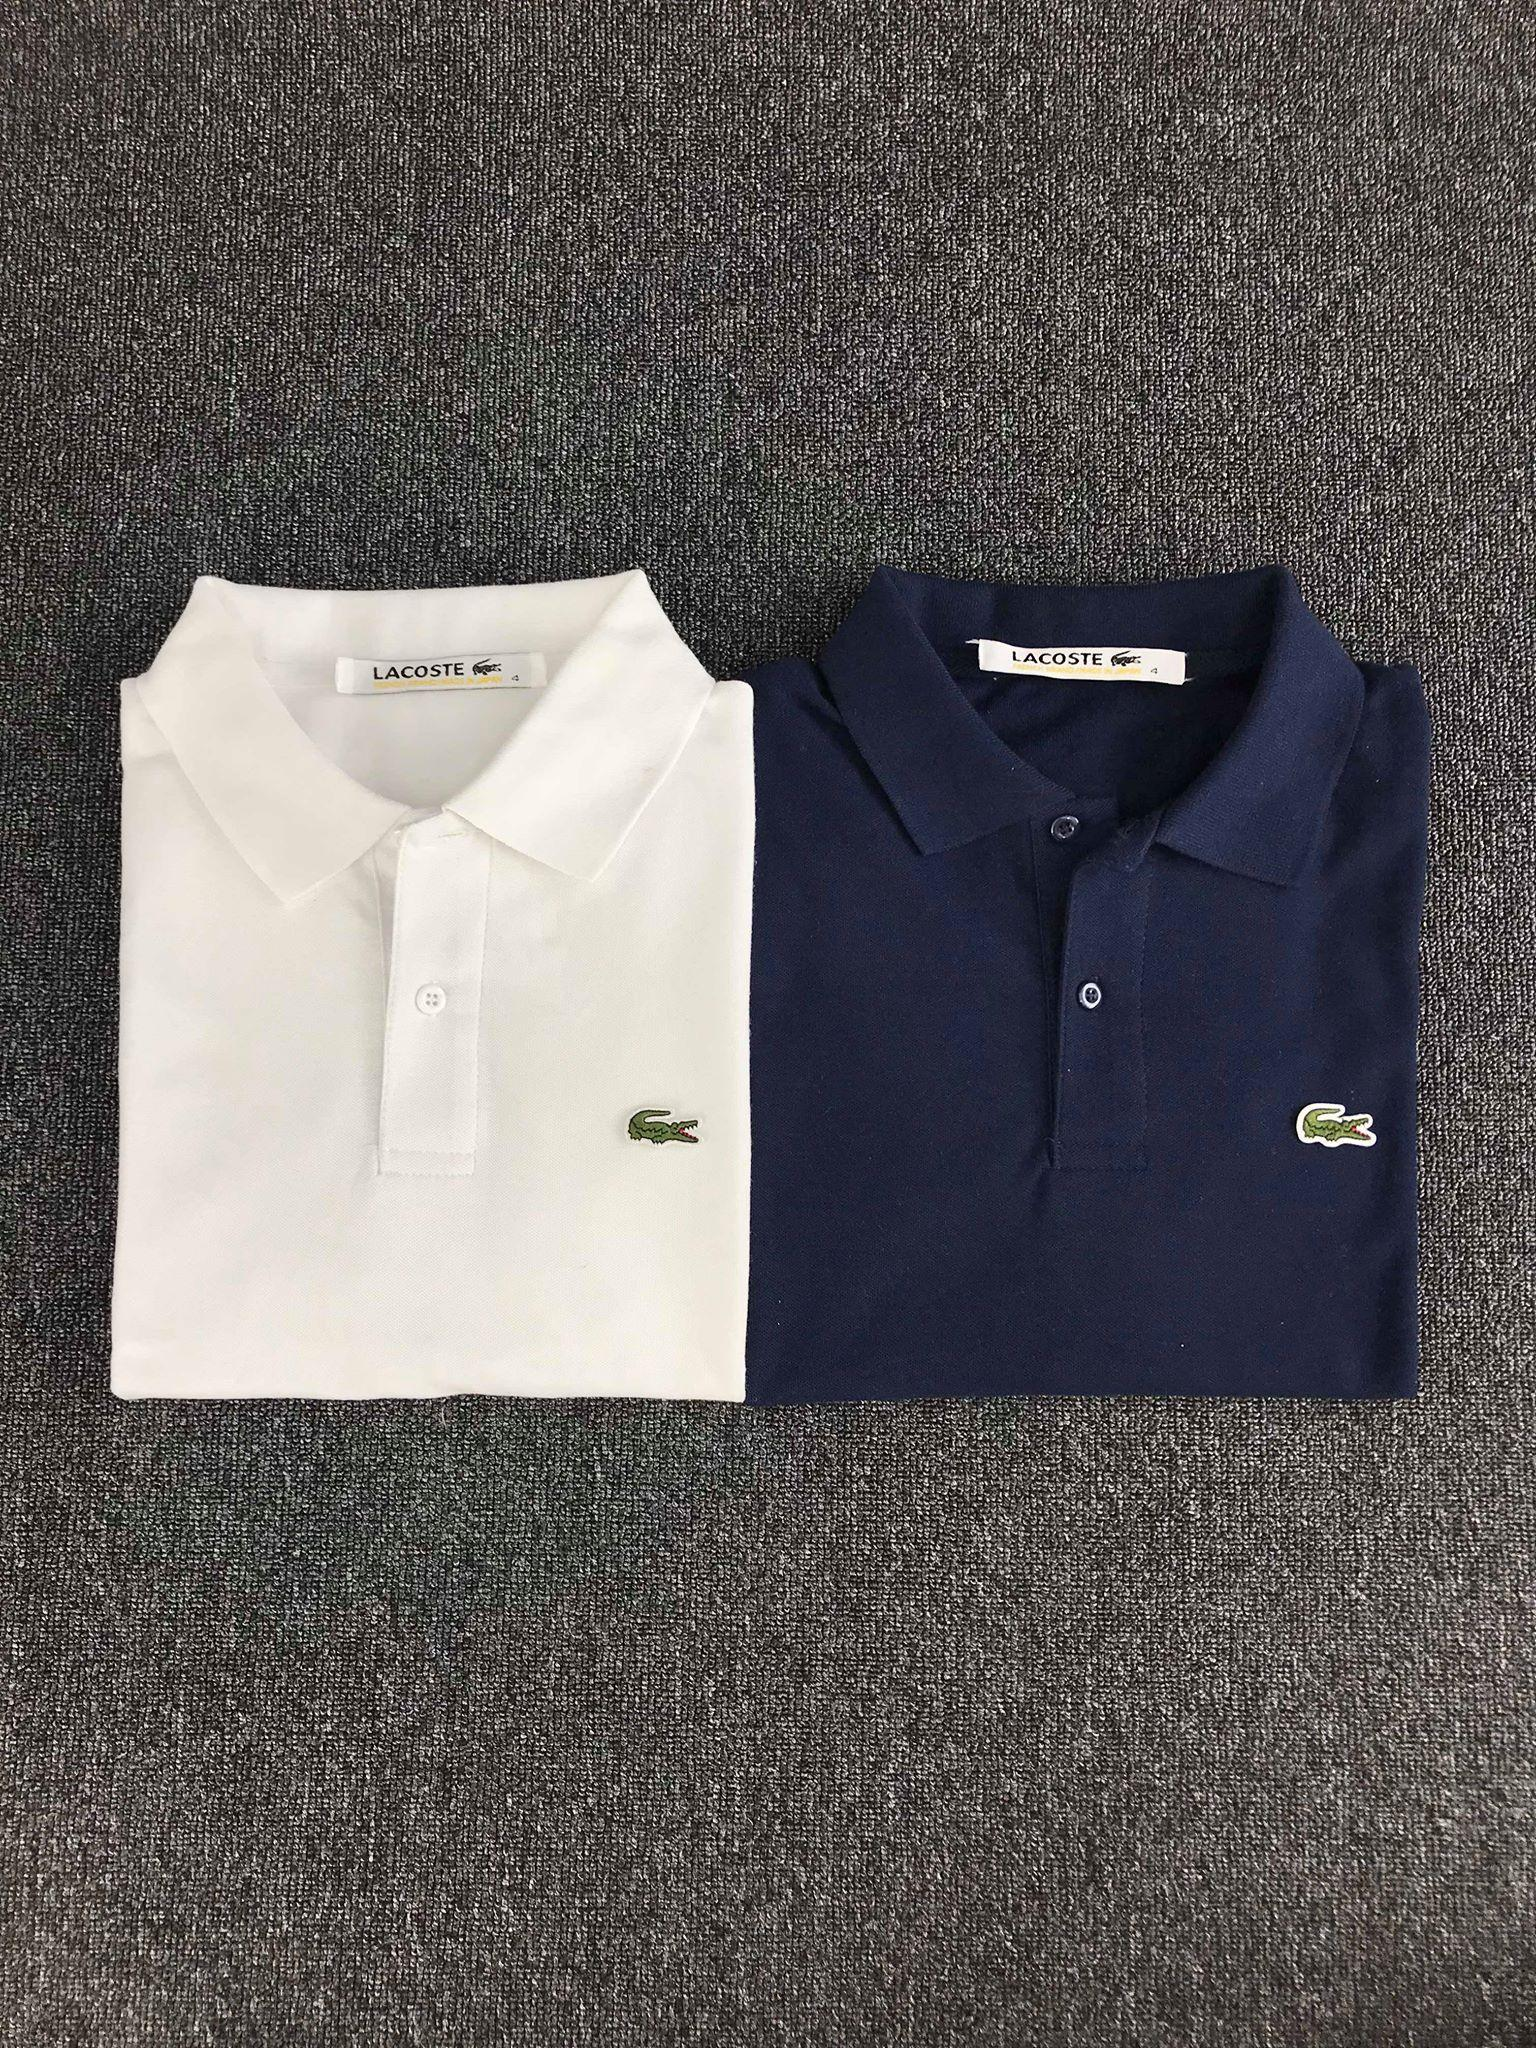 lacoste polo limited edition 2018